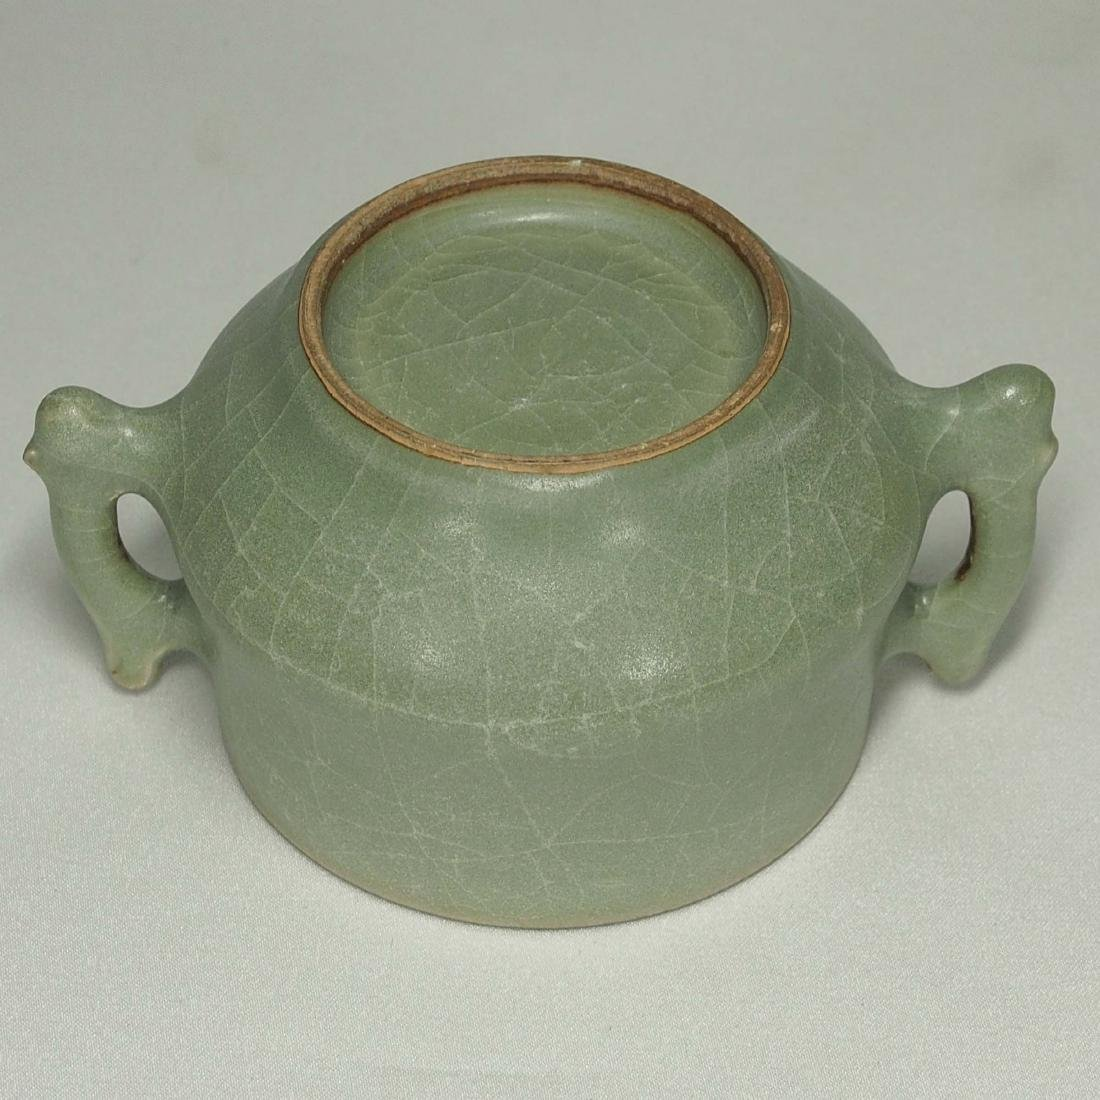 Longquan Crackled Censer with Handle, Song Dynasty - 5